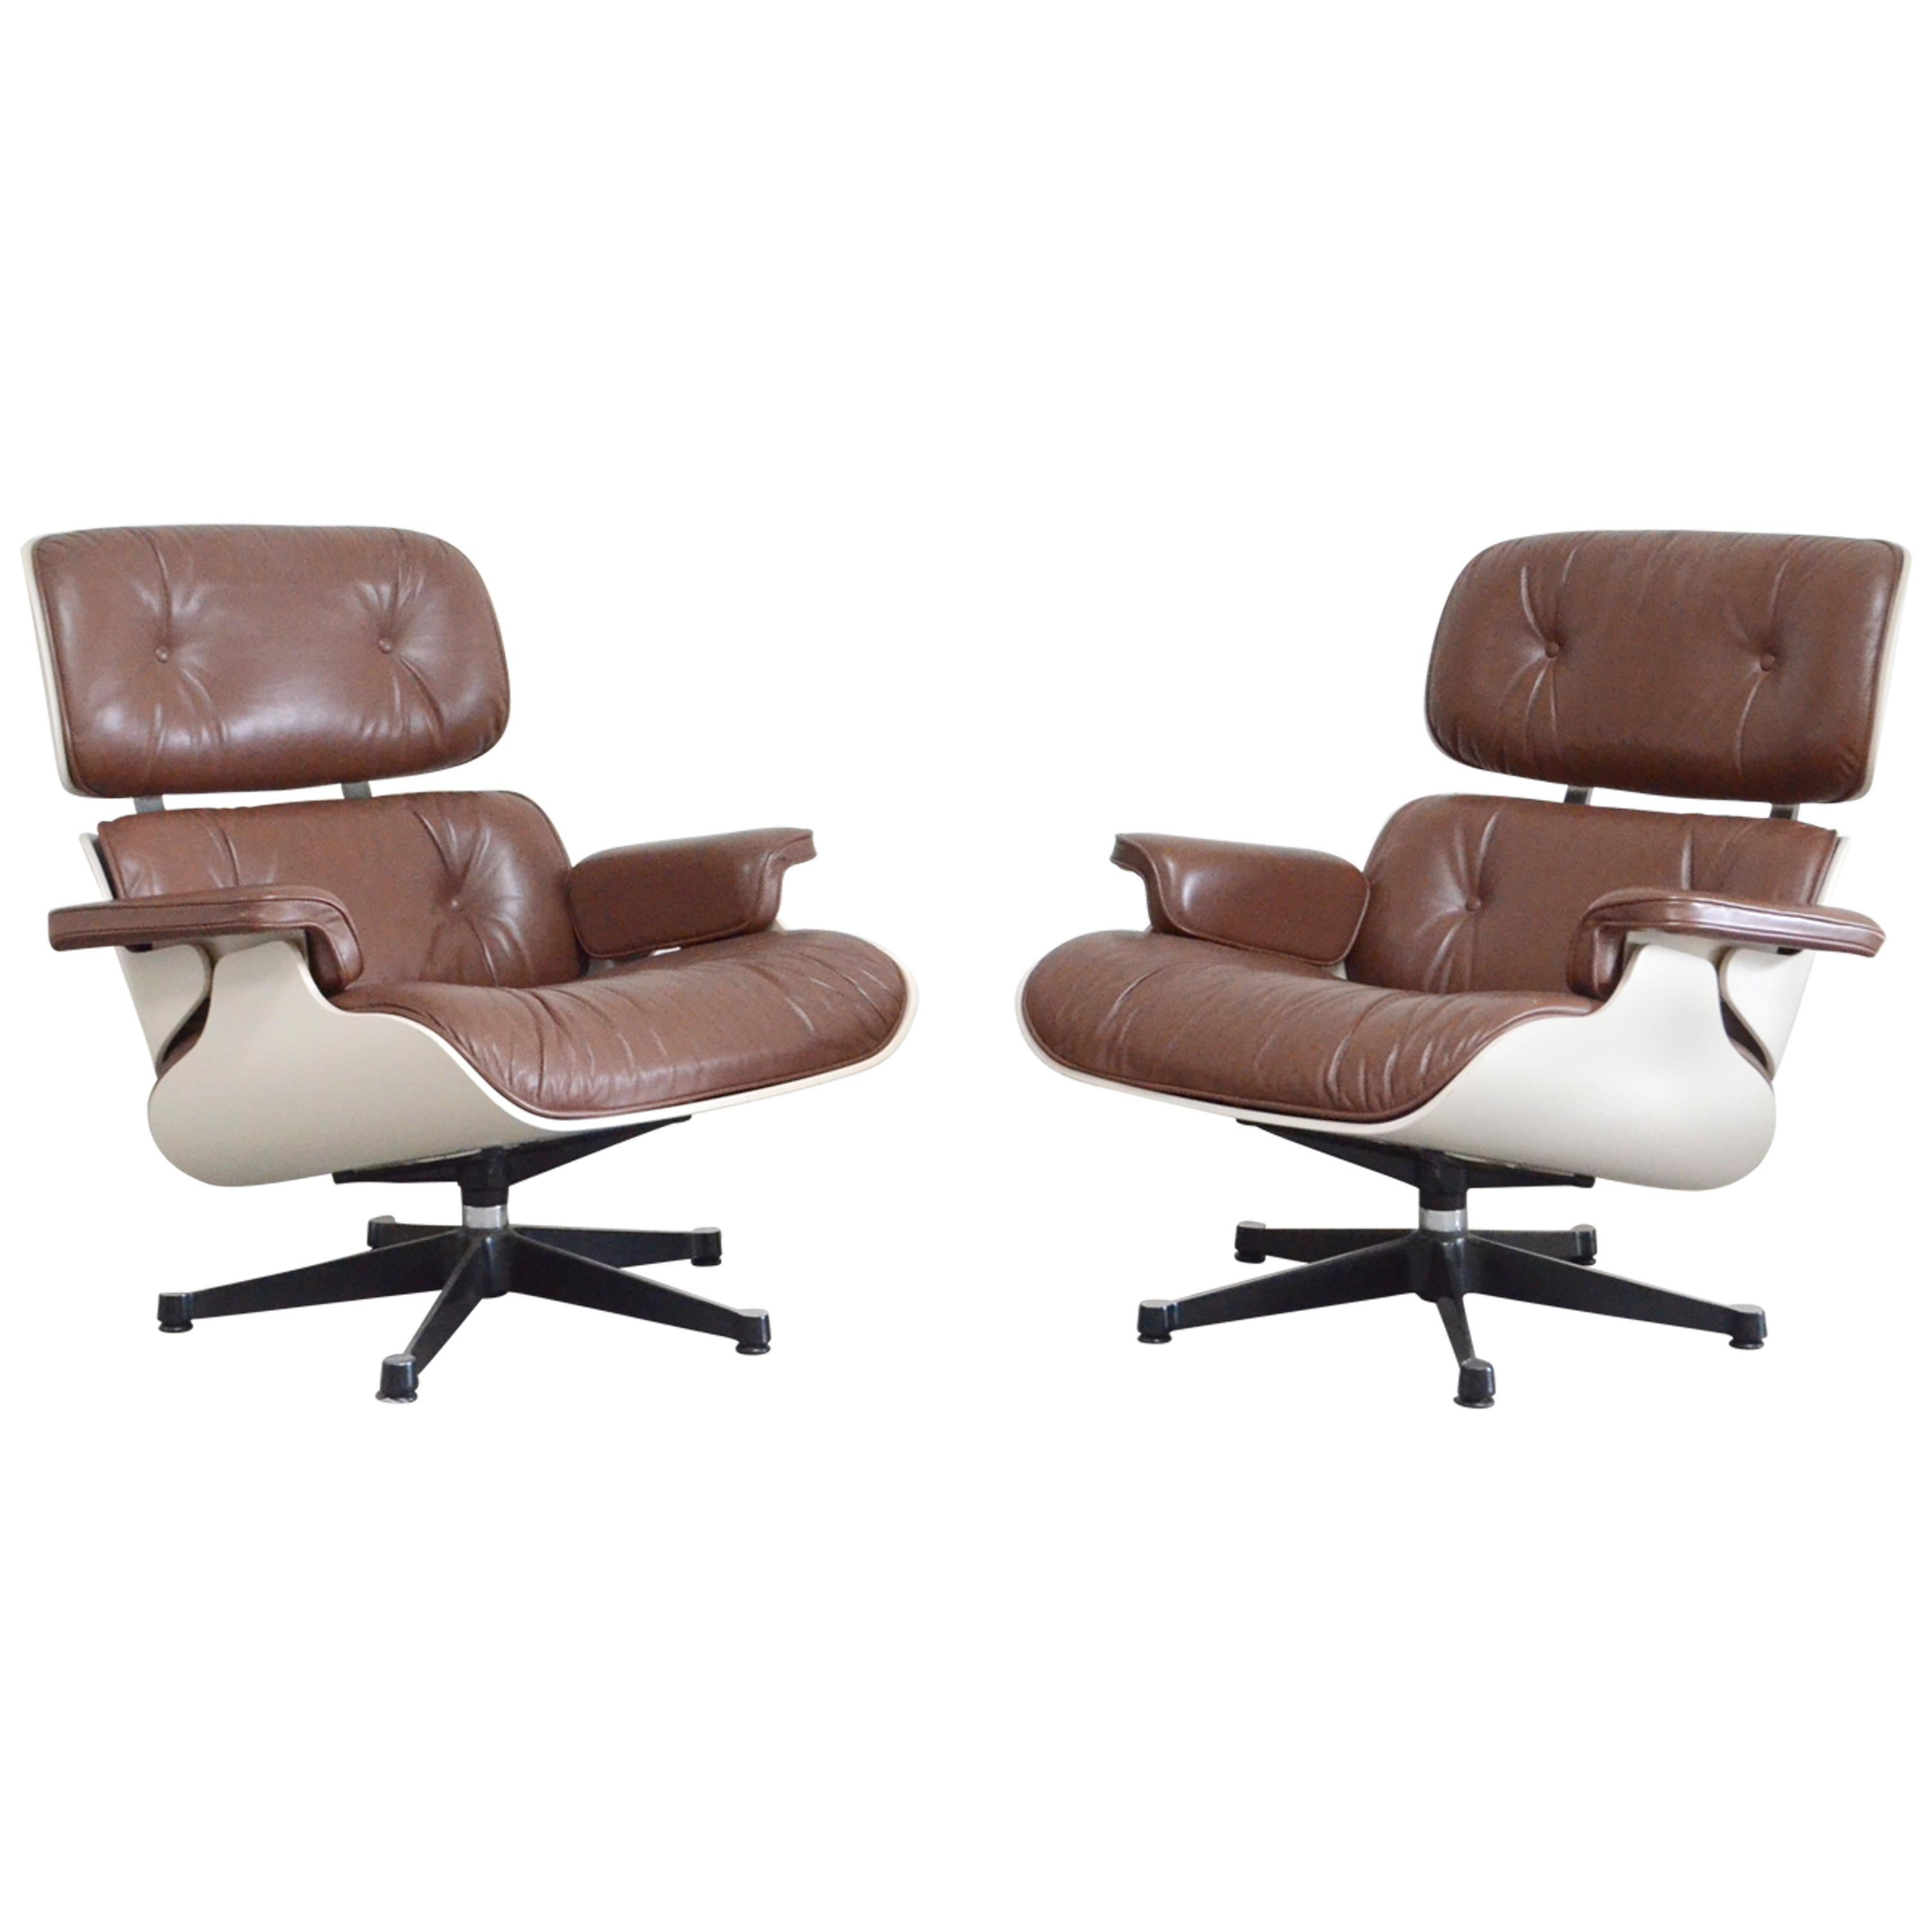 Vitra Eames Lounge Chair Dwg Vitra Eames Lounge Chair Cognac Brown And White Shell Set Of 2